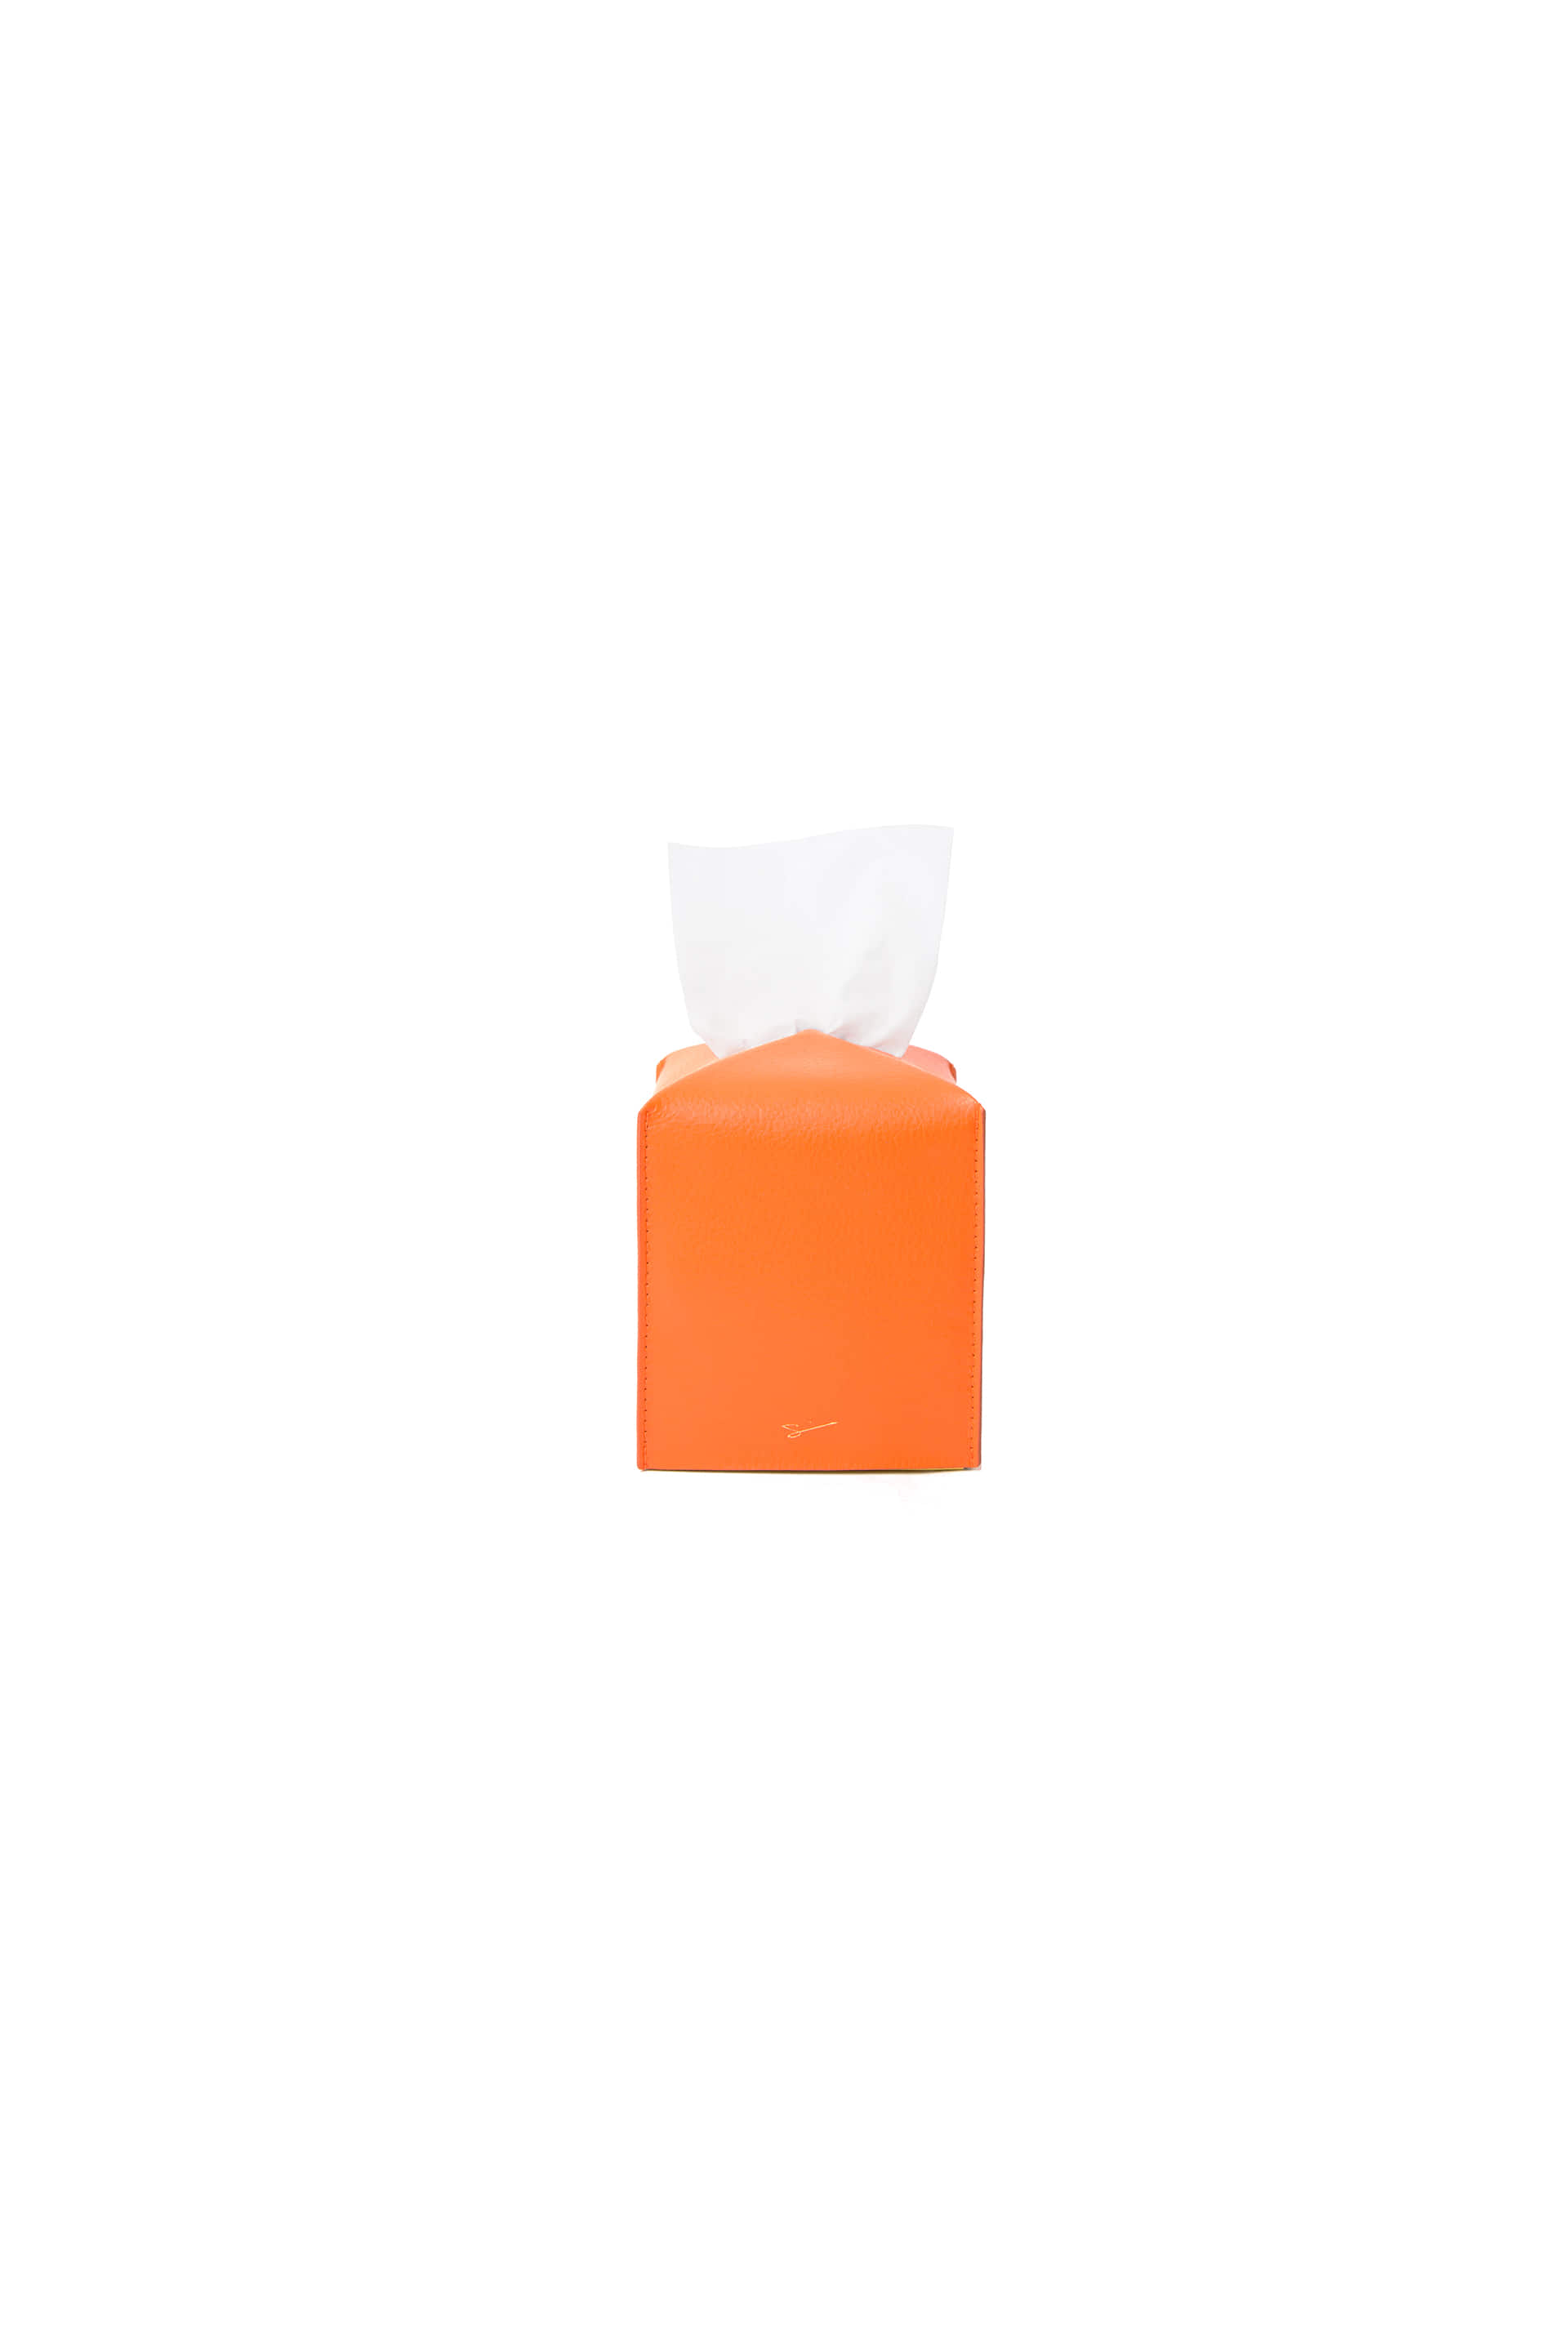 TISSUE CASE S 03 Orange